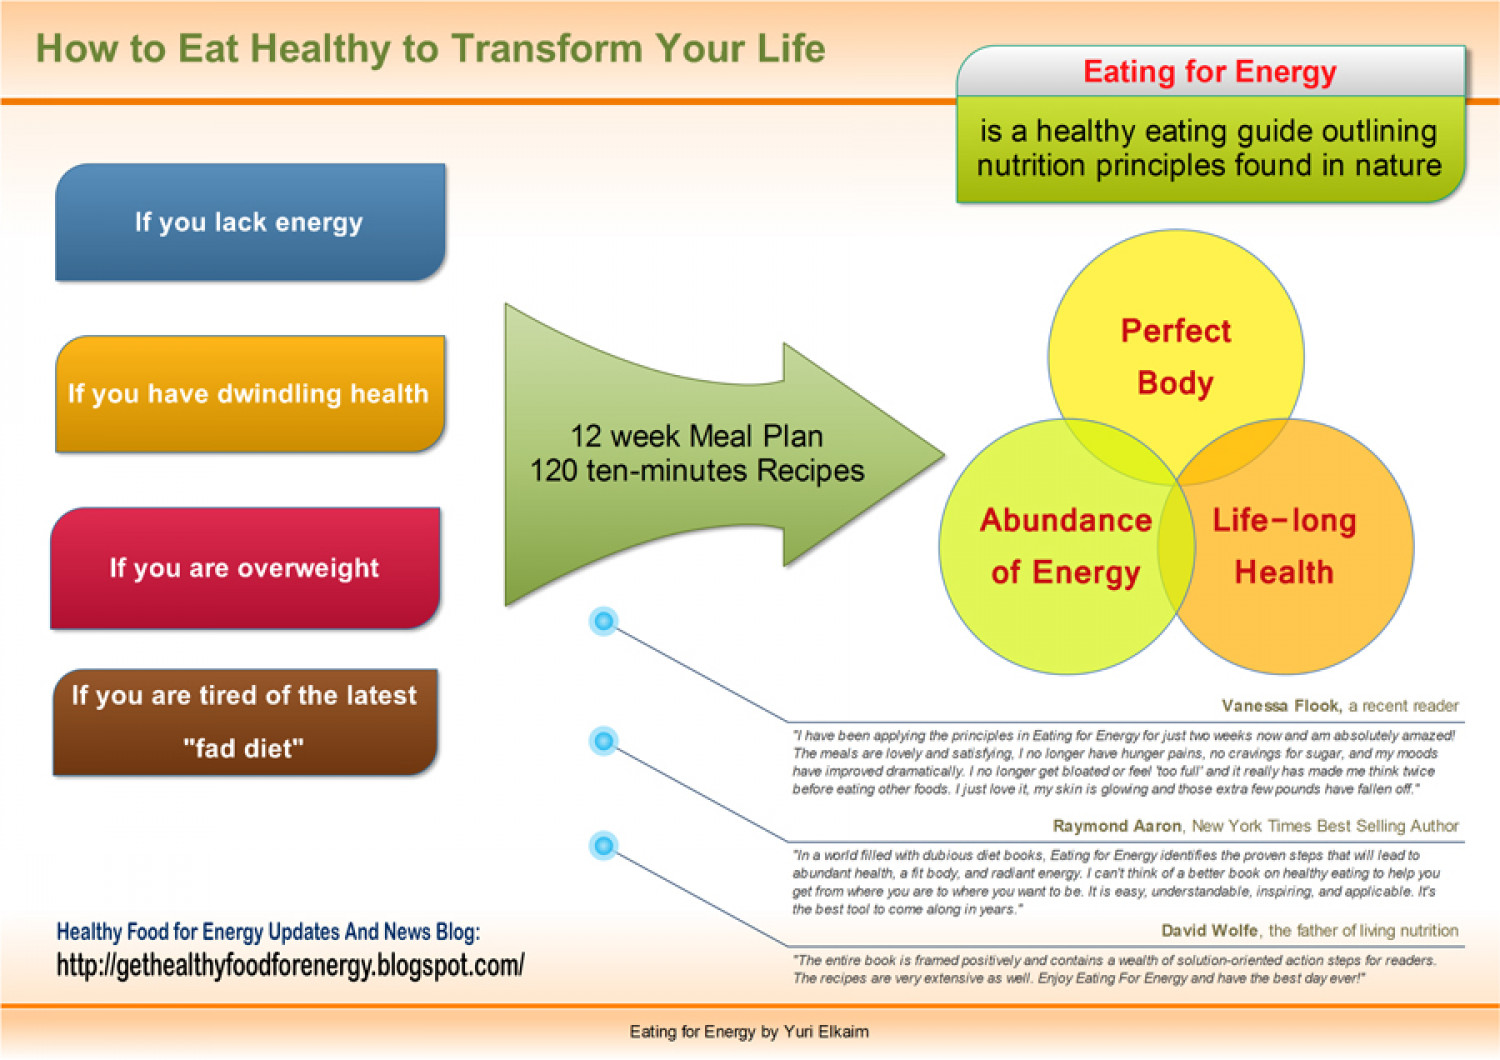 How to Eat Healthy to Transform Your Life Infographic